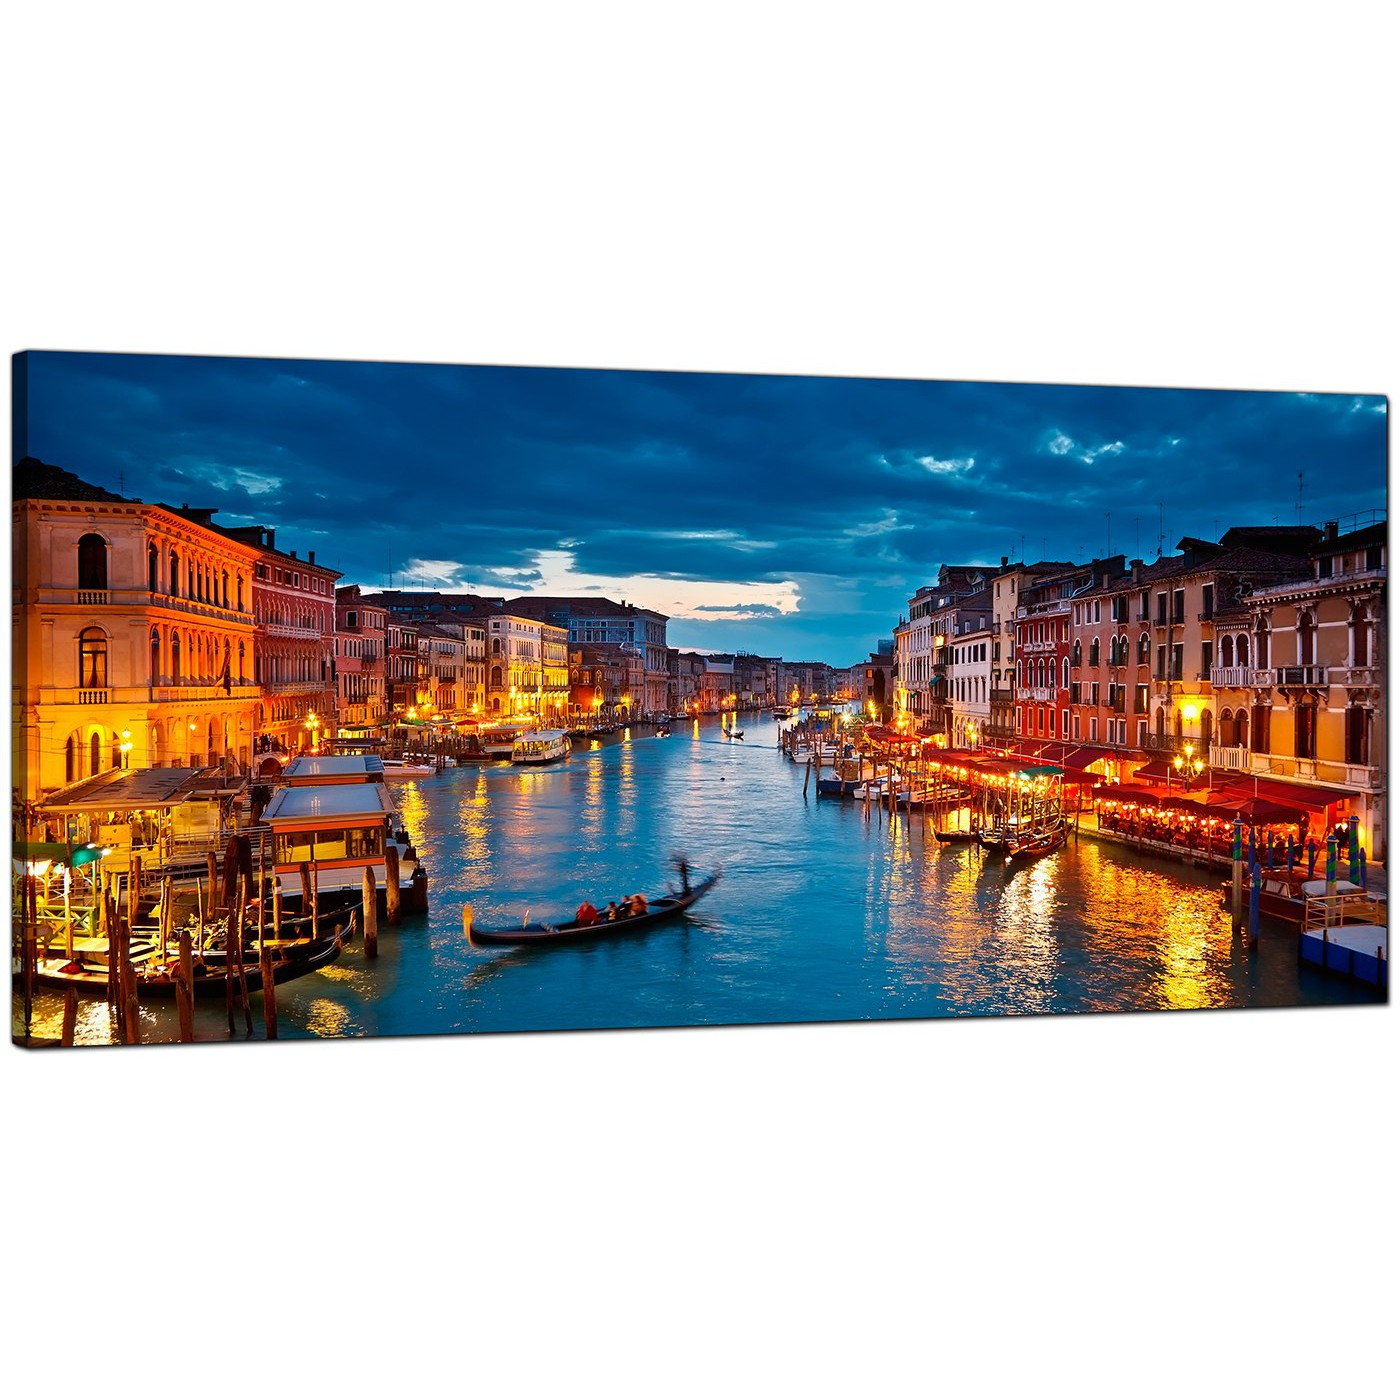 display gallery item 4 blue bedroom extra large canvas of venice italy display gallery item 5